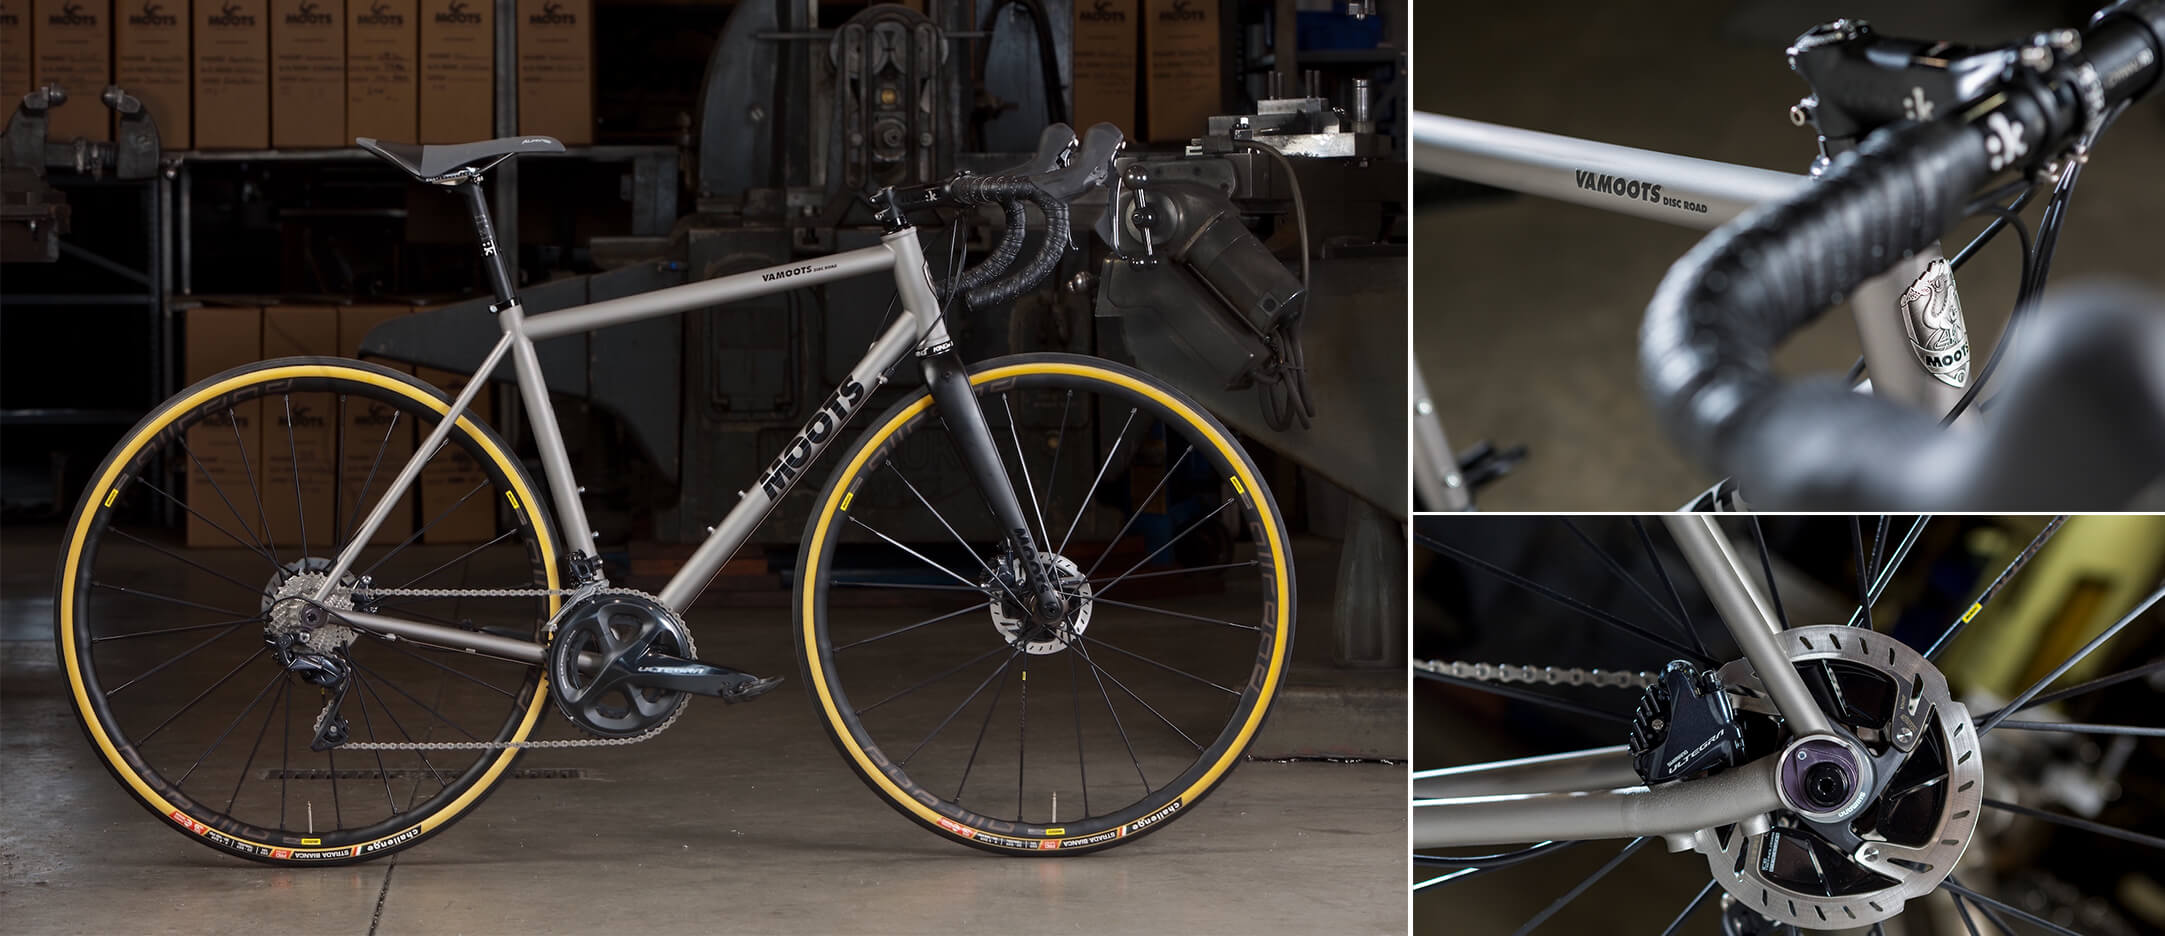 Moots Vamoots Disc Road DR - Contender Bicycles